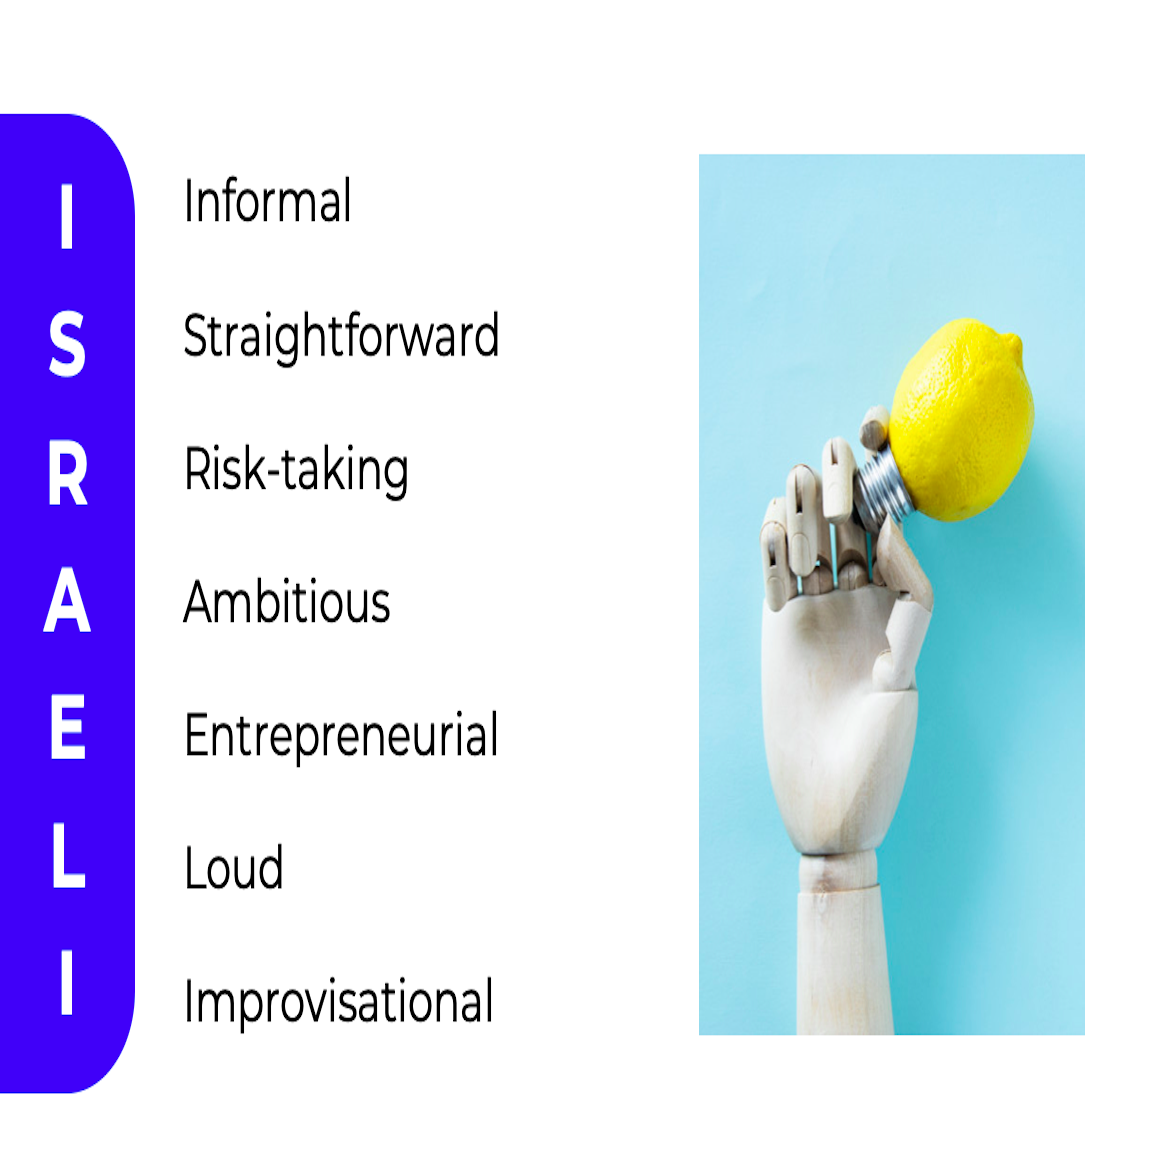 8 Practical Tips For Israelis Working With People From Other Cultures